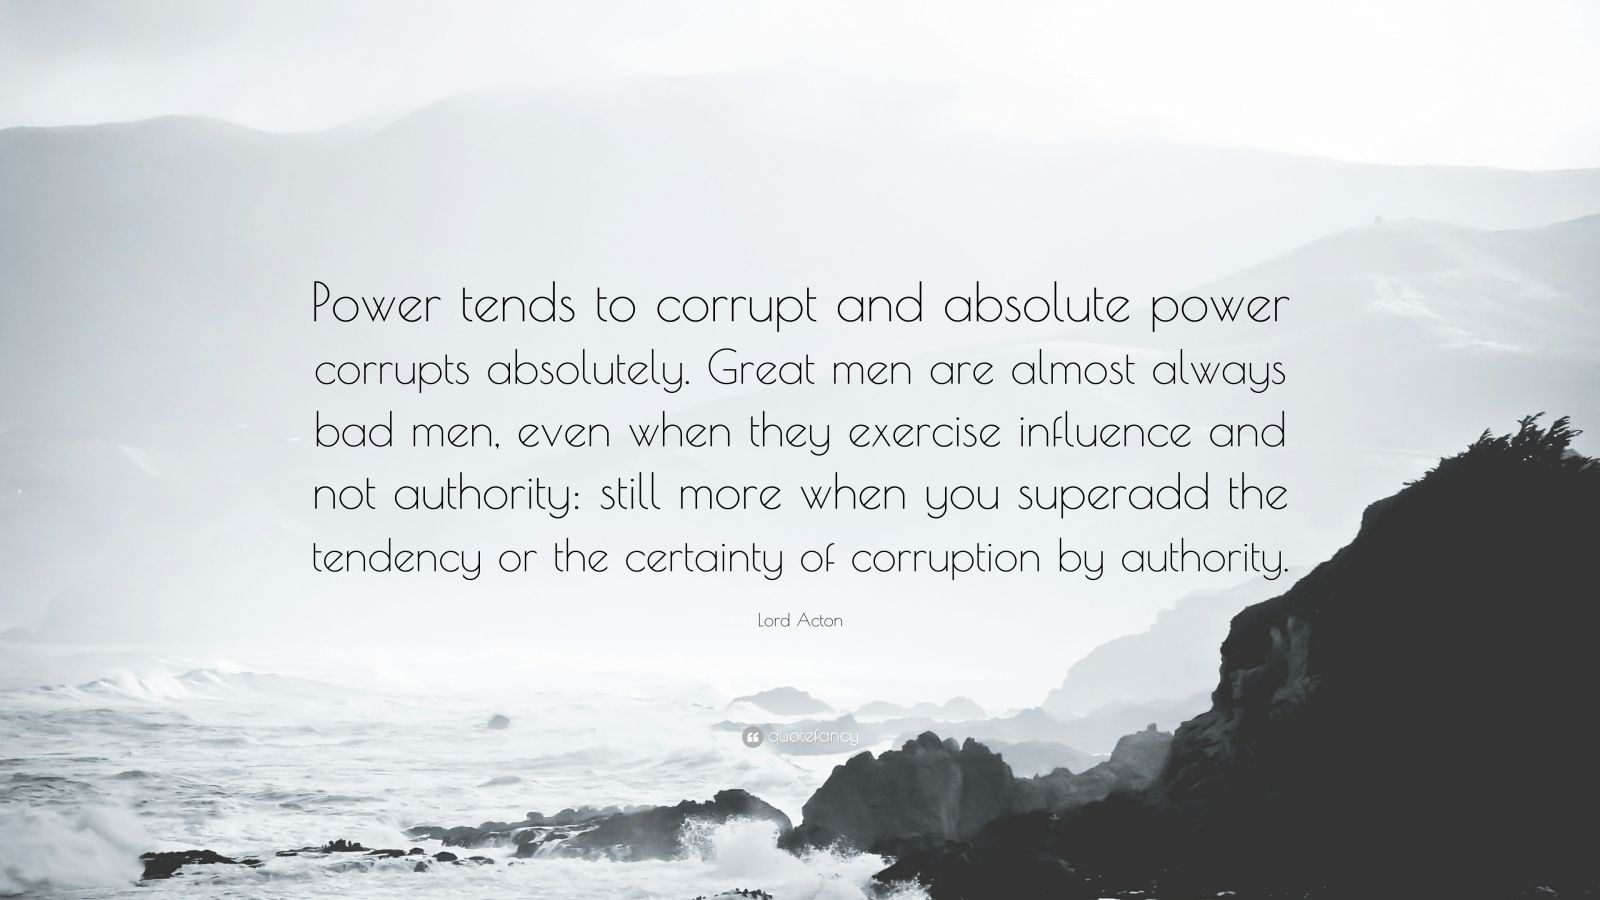 power tends to corrupt and absolute